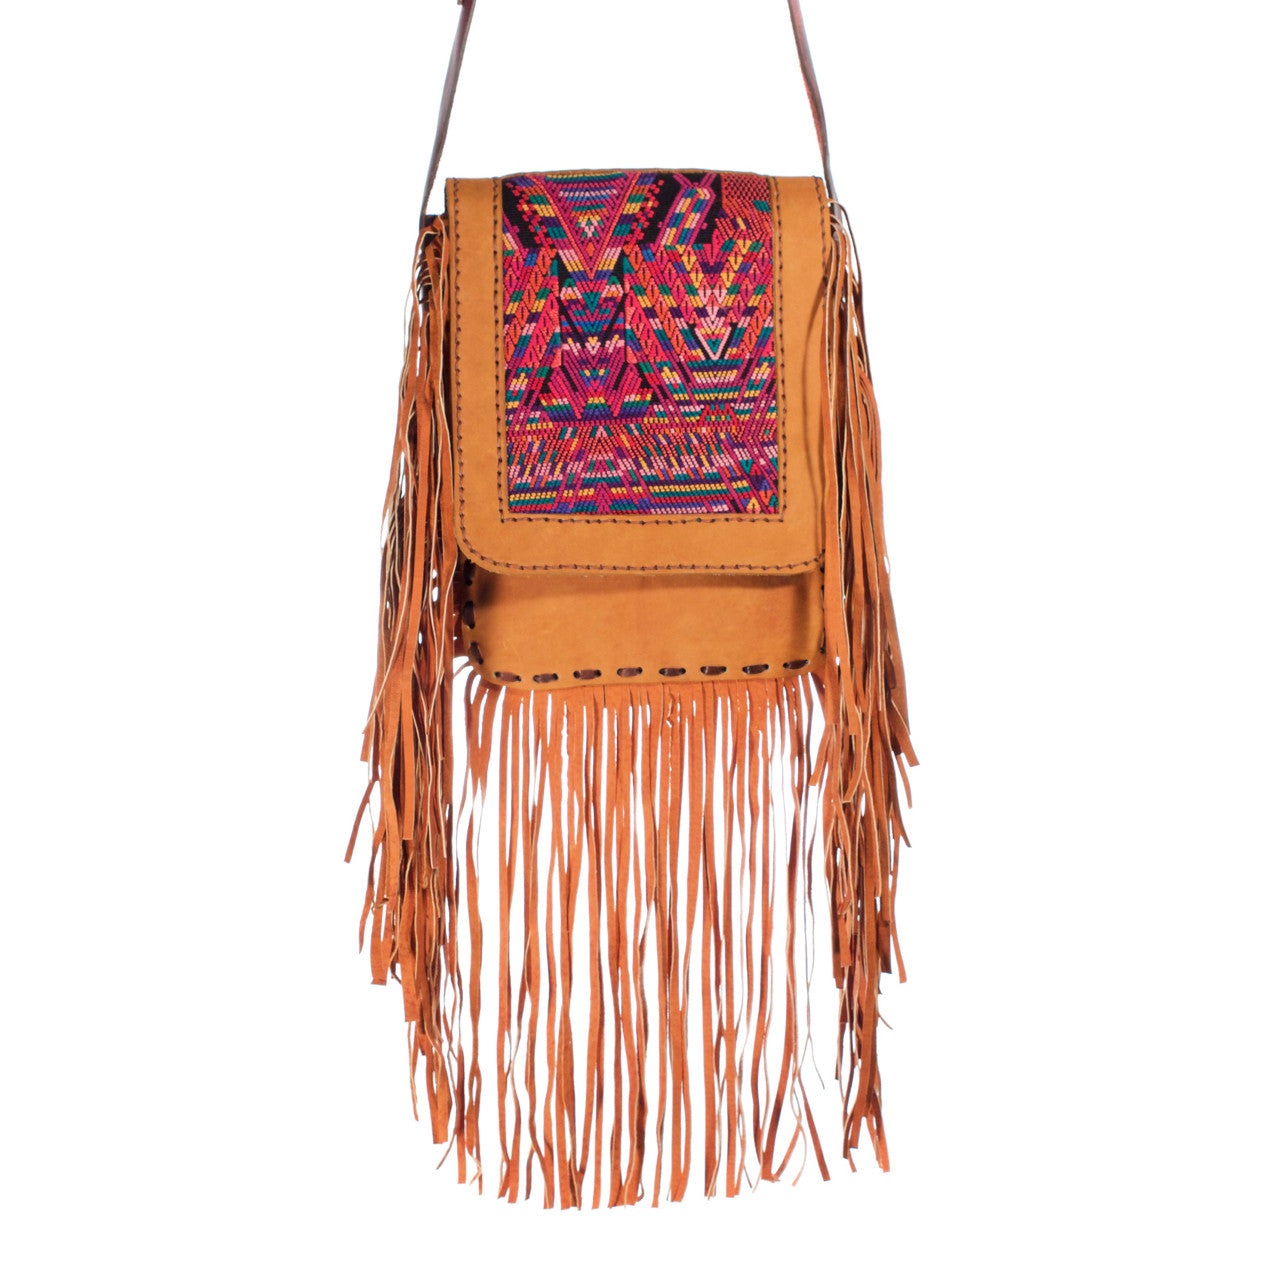 Chi Chi Fringe Bag - Tan 02  Shoulder Bag Pink Rainbow - Cielo Collective handmade Mexico Guatemala